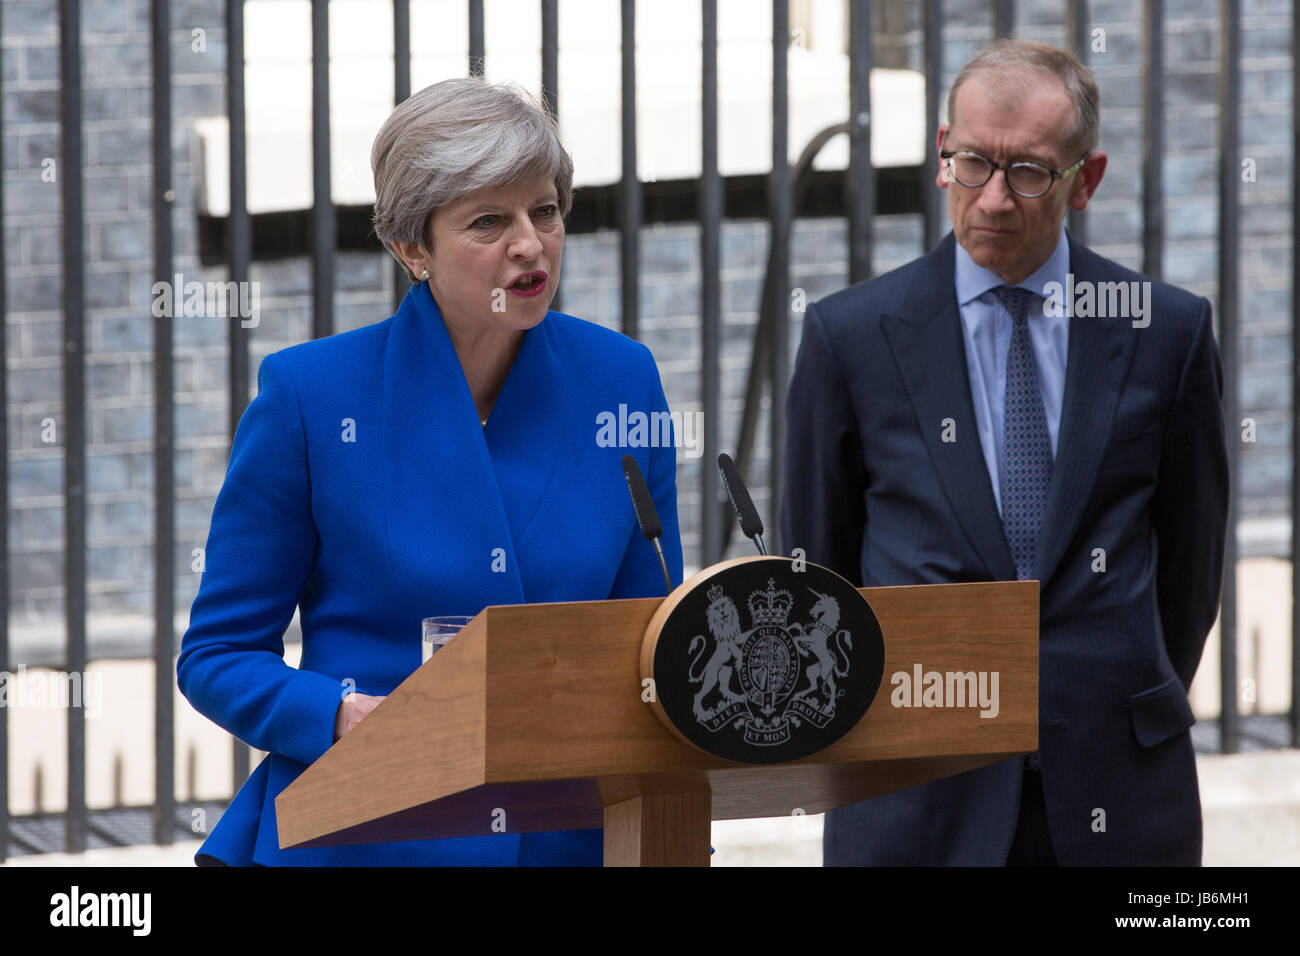 London, UK. 9th June, 2017. Theresa May makes a statement outside 10 Downing Street regarding the formation of a - Stock Image